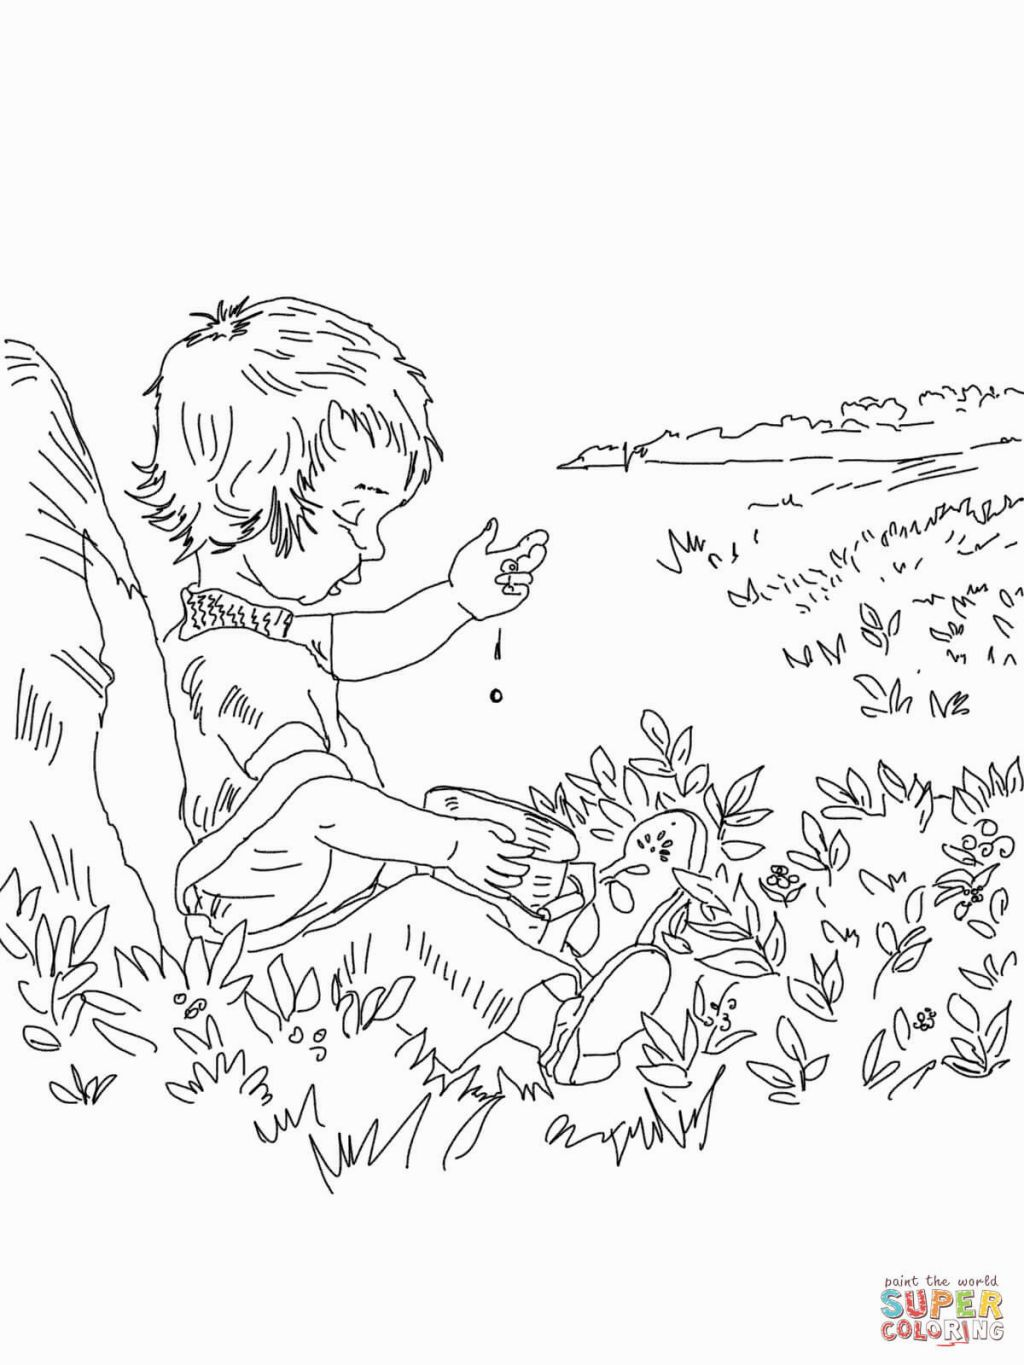 blueberries for sal coloring page blueberries for sal coloring page coloring home blueberries coloring for page sal